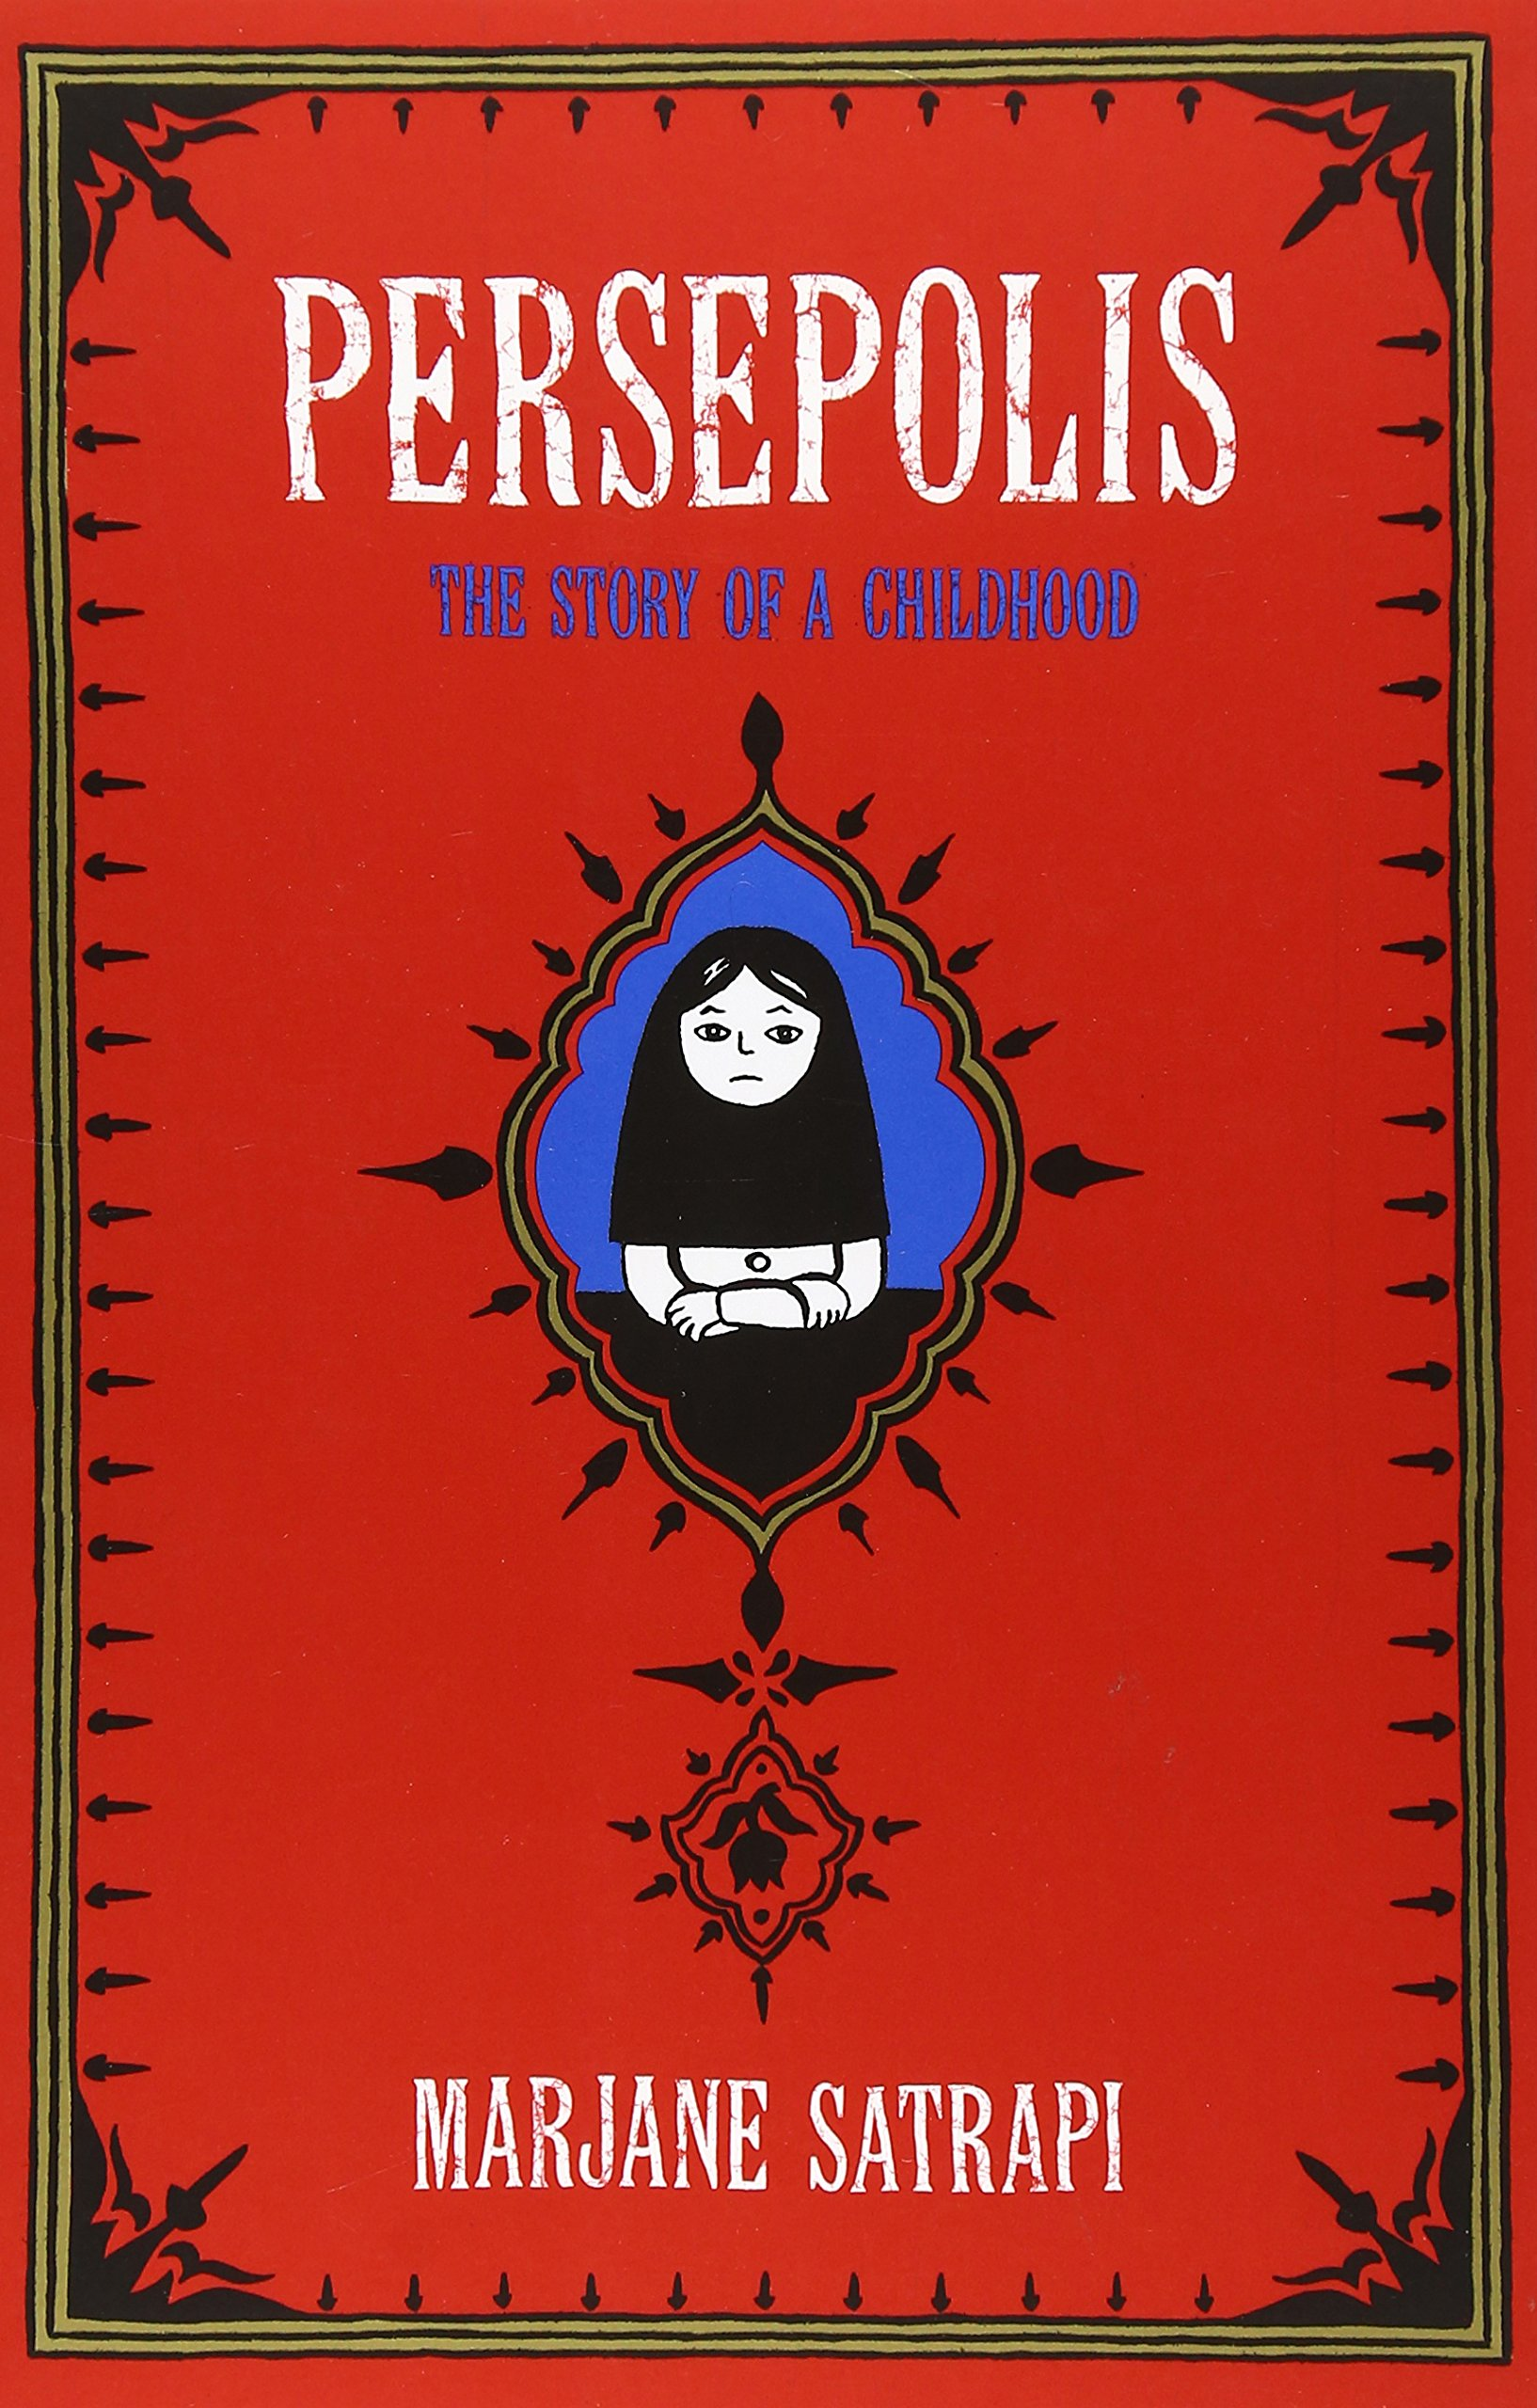 persepolis the story of a childhood pantheon graphic novels persepolis the story of a childhood pantheon graphic novels marjane satrapi 8601419944736 amazon com books